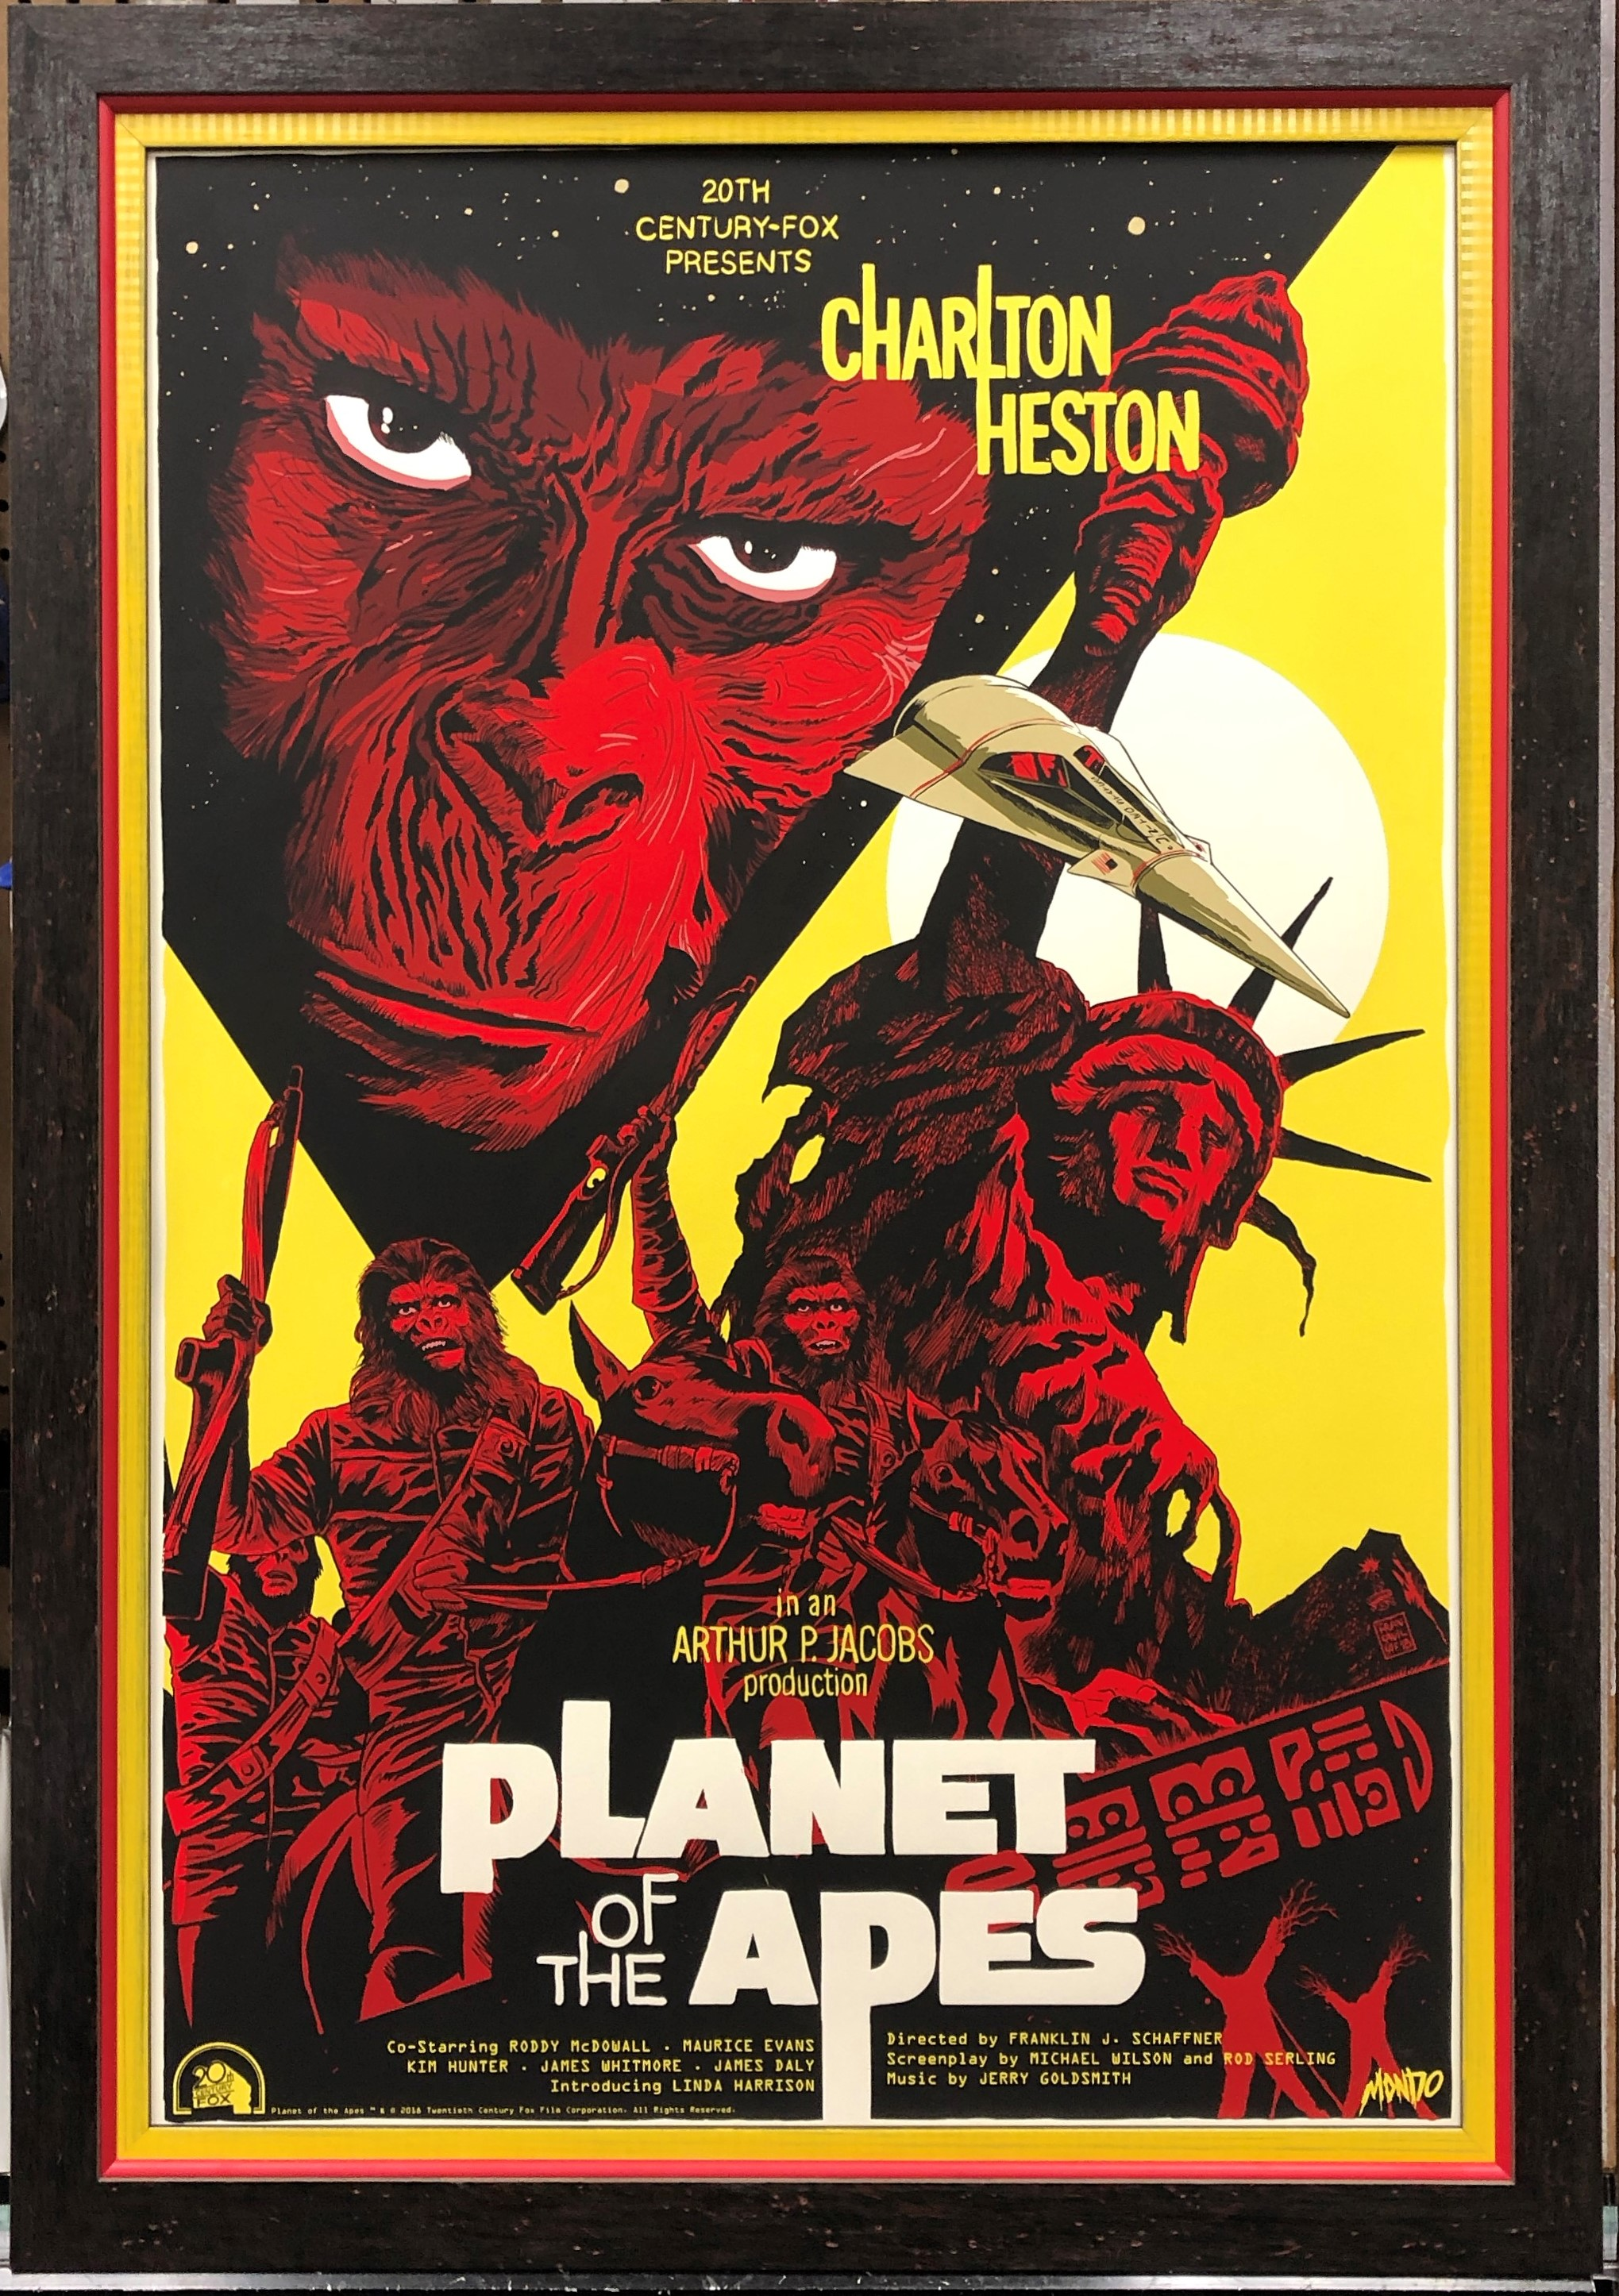 the-planet-of-the-apes.jpg